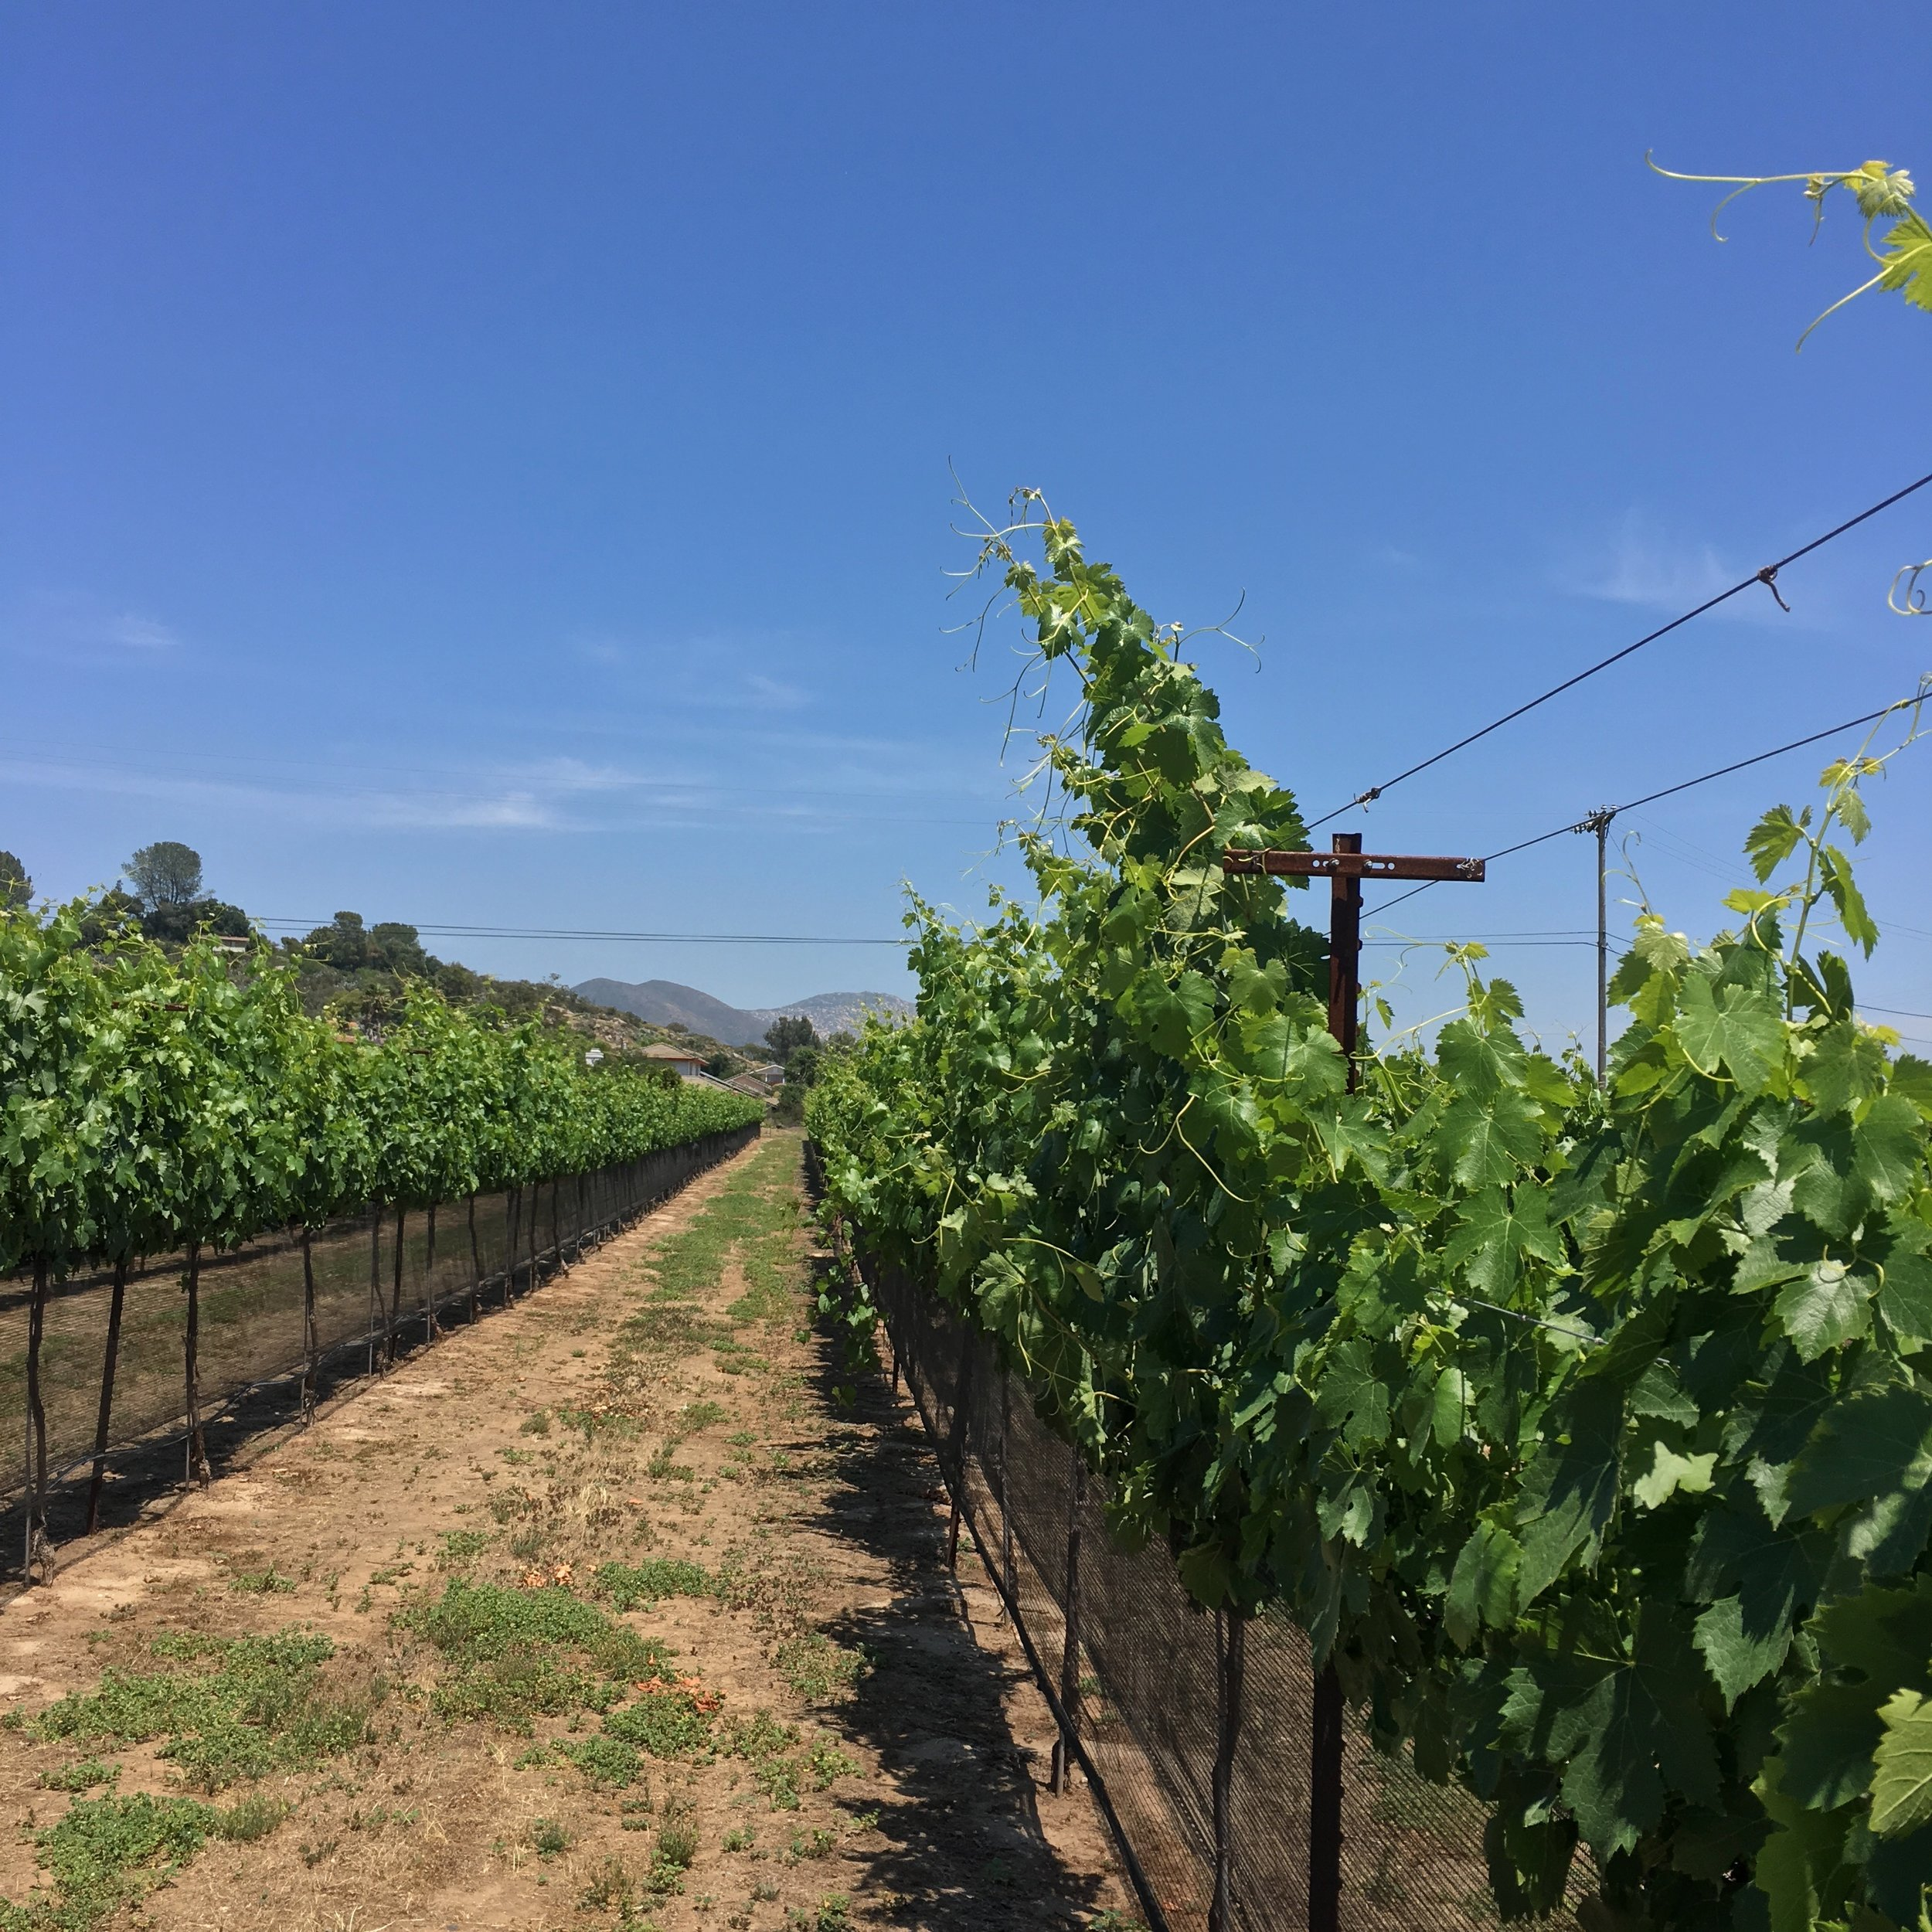 Long row of Cinsault vines